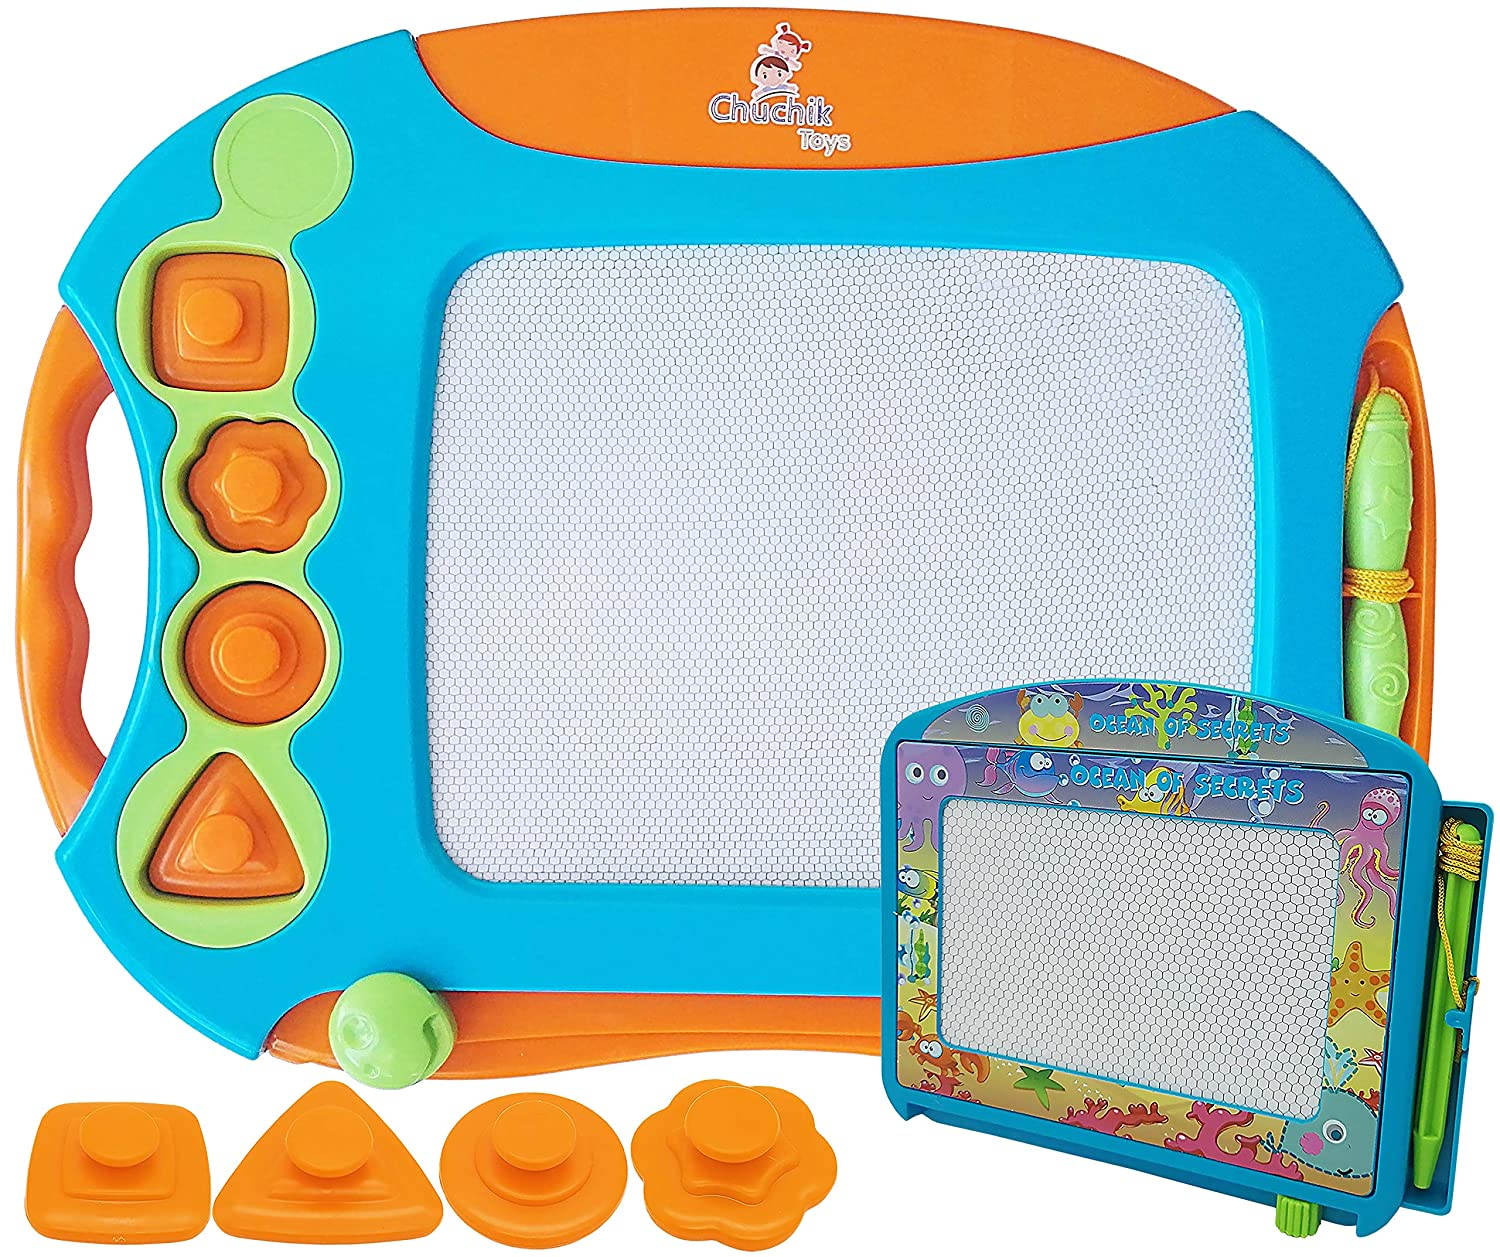 CHUCHIK Toys Magnetic Drawing Board for Kids and Toddlers